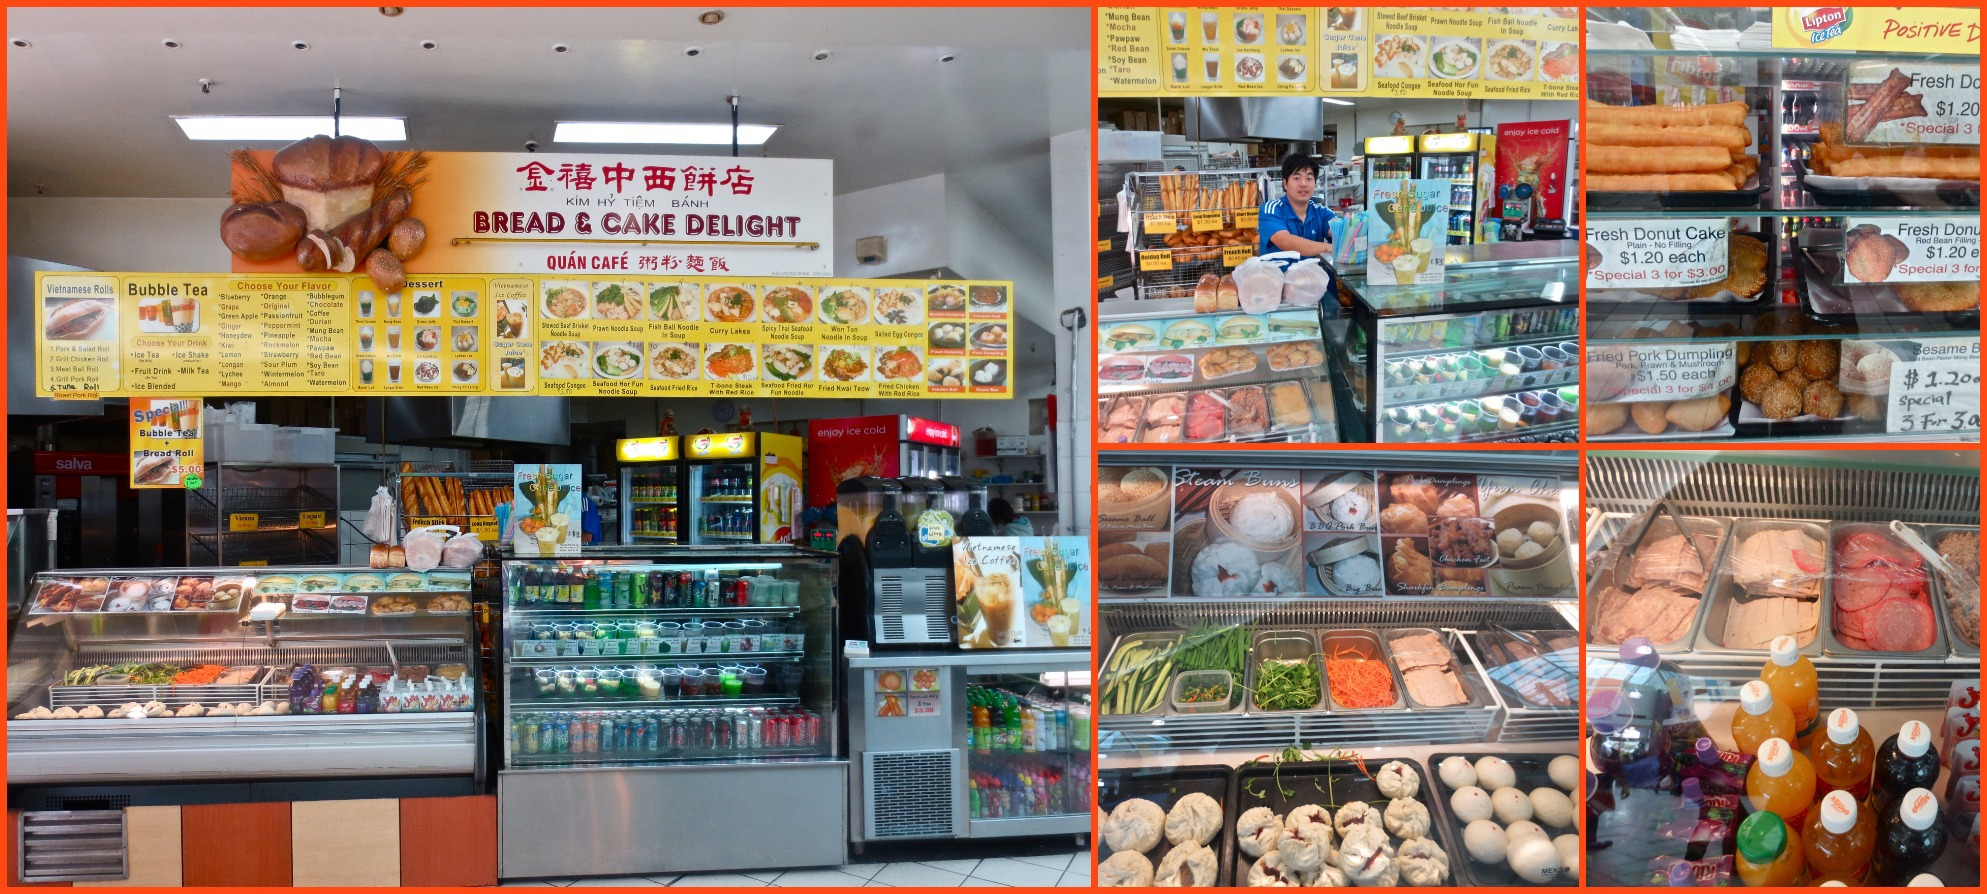 Springvale Central Asian Market Shopping Vegetables Fruit Groceries Clothing Bread And Cake Delight Quan Cafe For Vietnamese Rolls